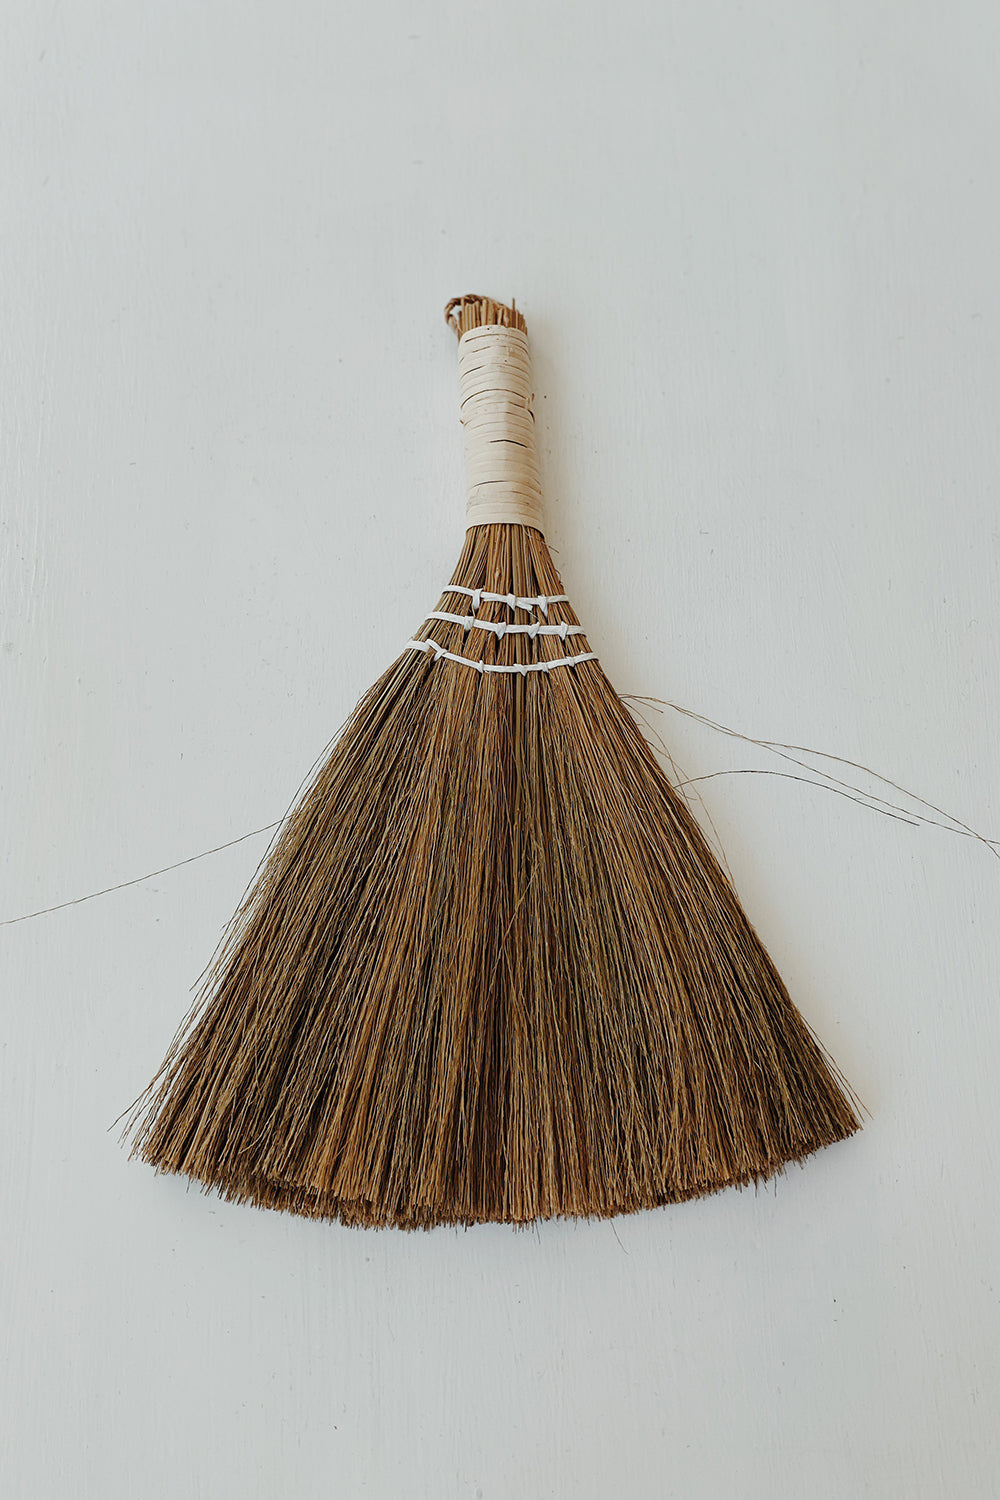 Japanese Small Broom